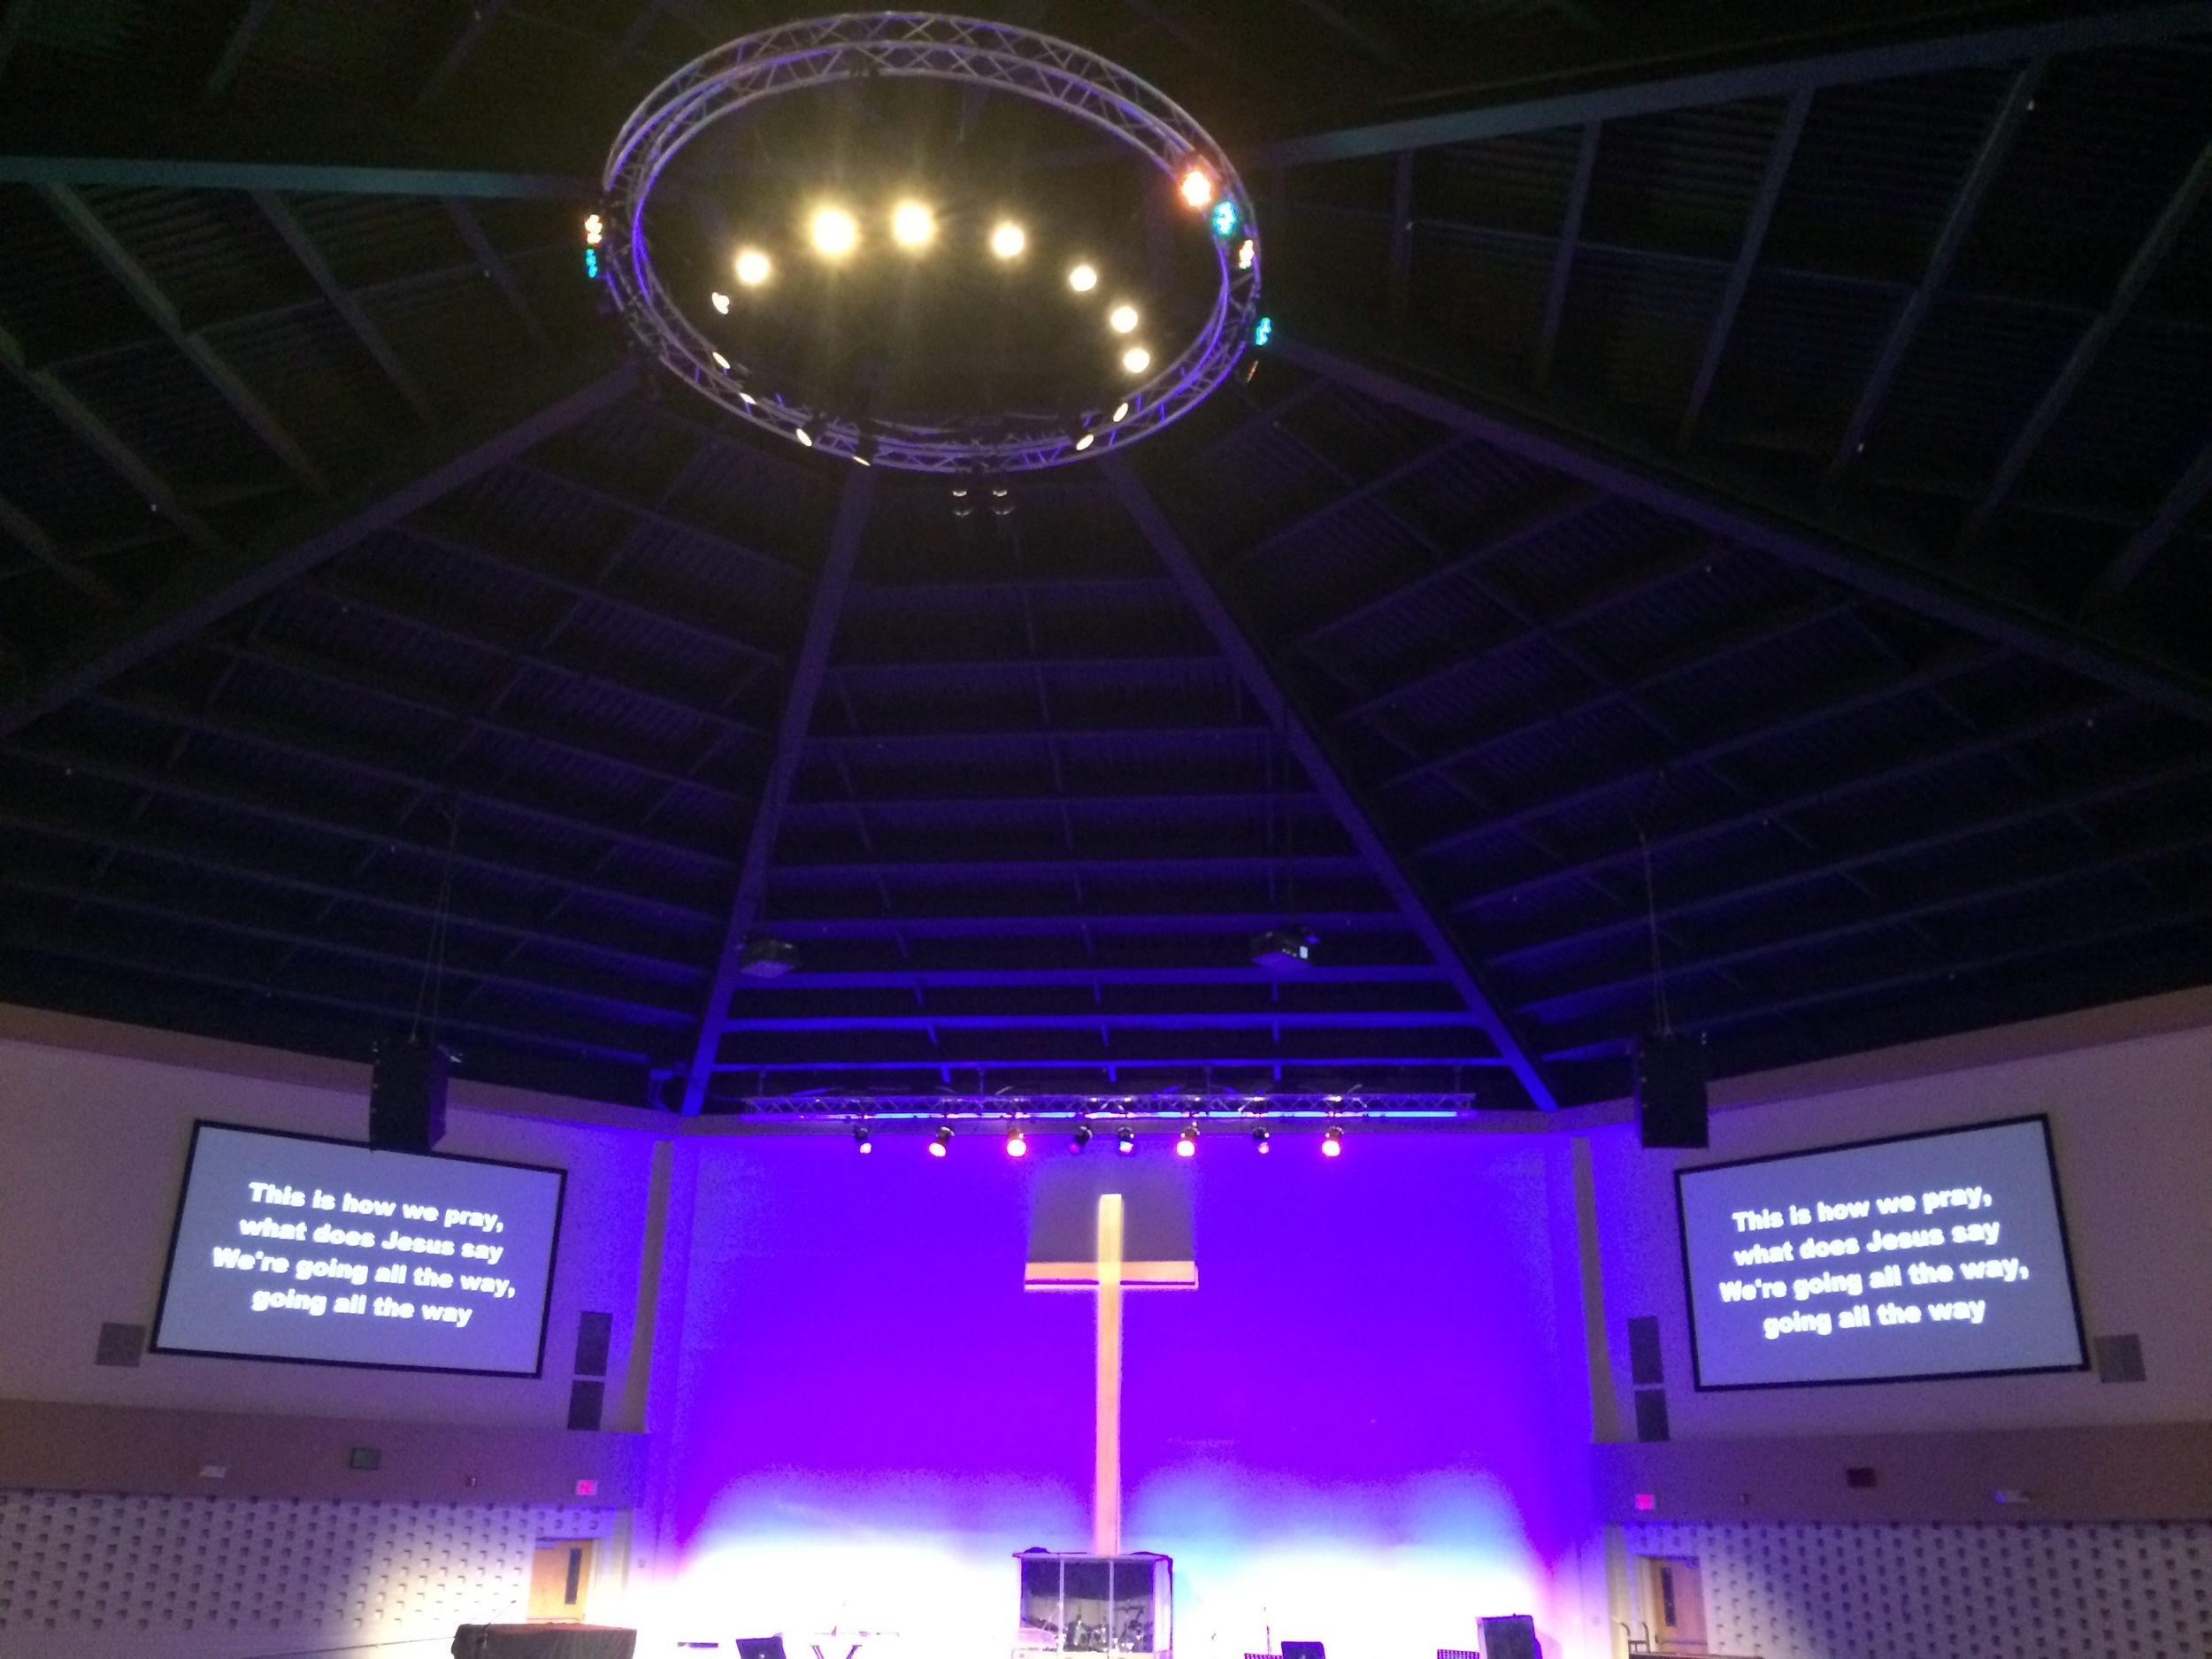 Chesapeake_Christian_Fellowship_Church_34.jpg